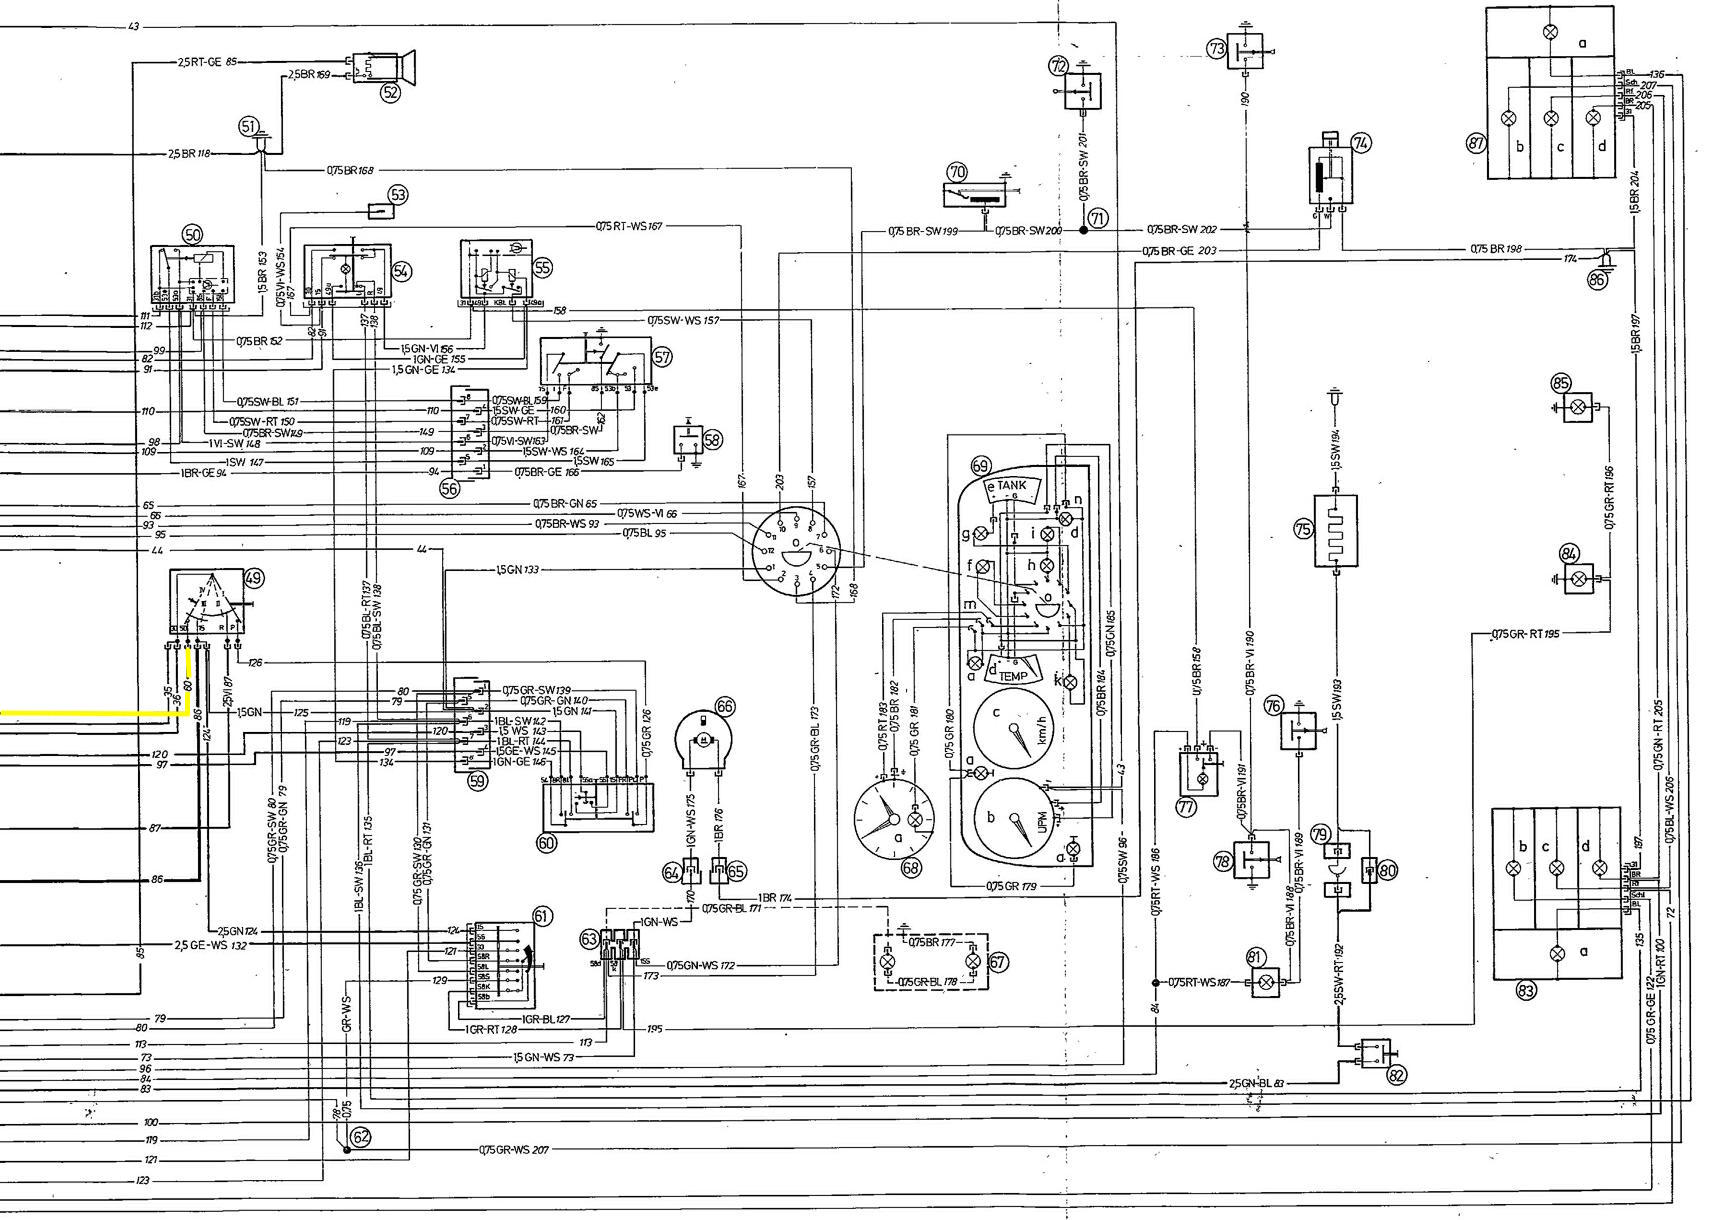 wiring diagram general discussion bmw faq